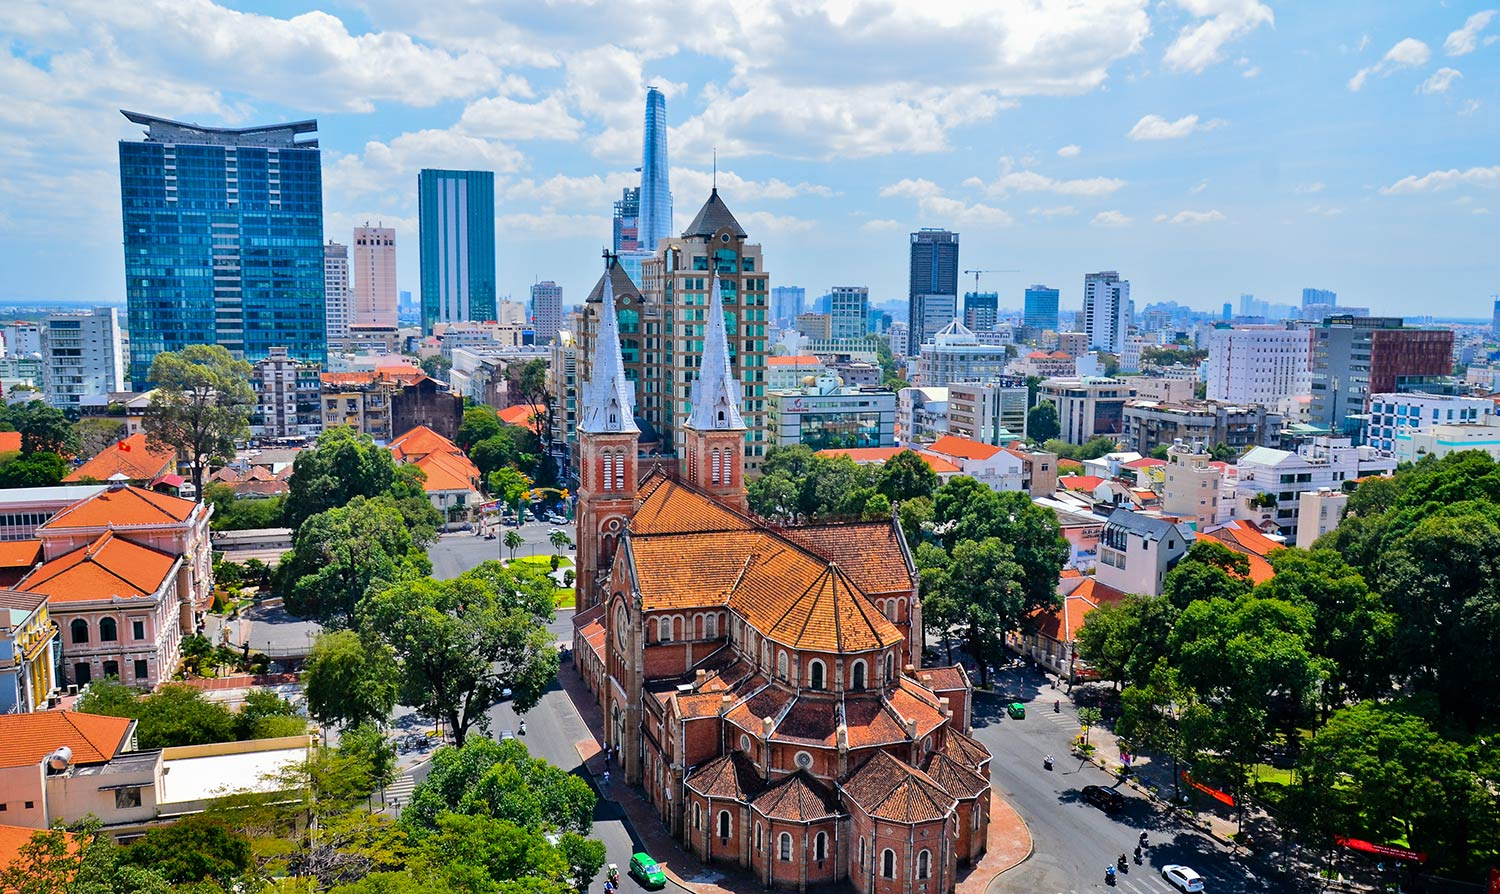 Aerial view of Ho Chi Minh City on a sunny day